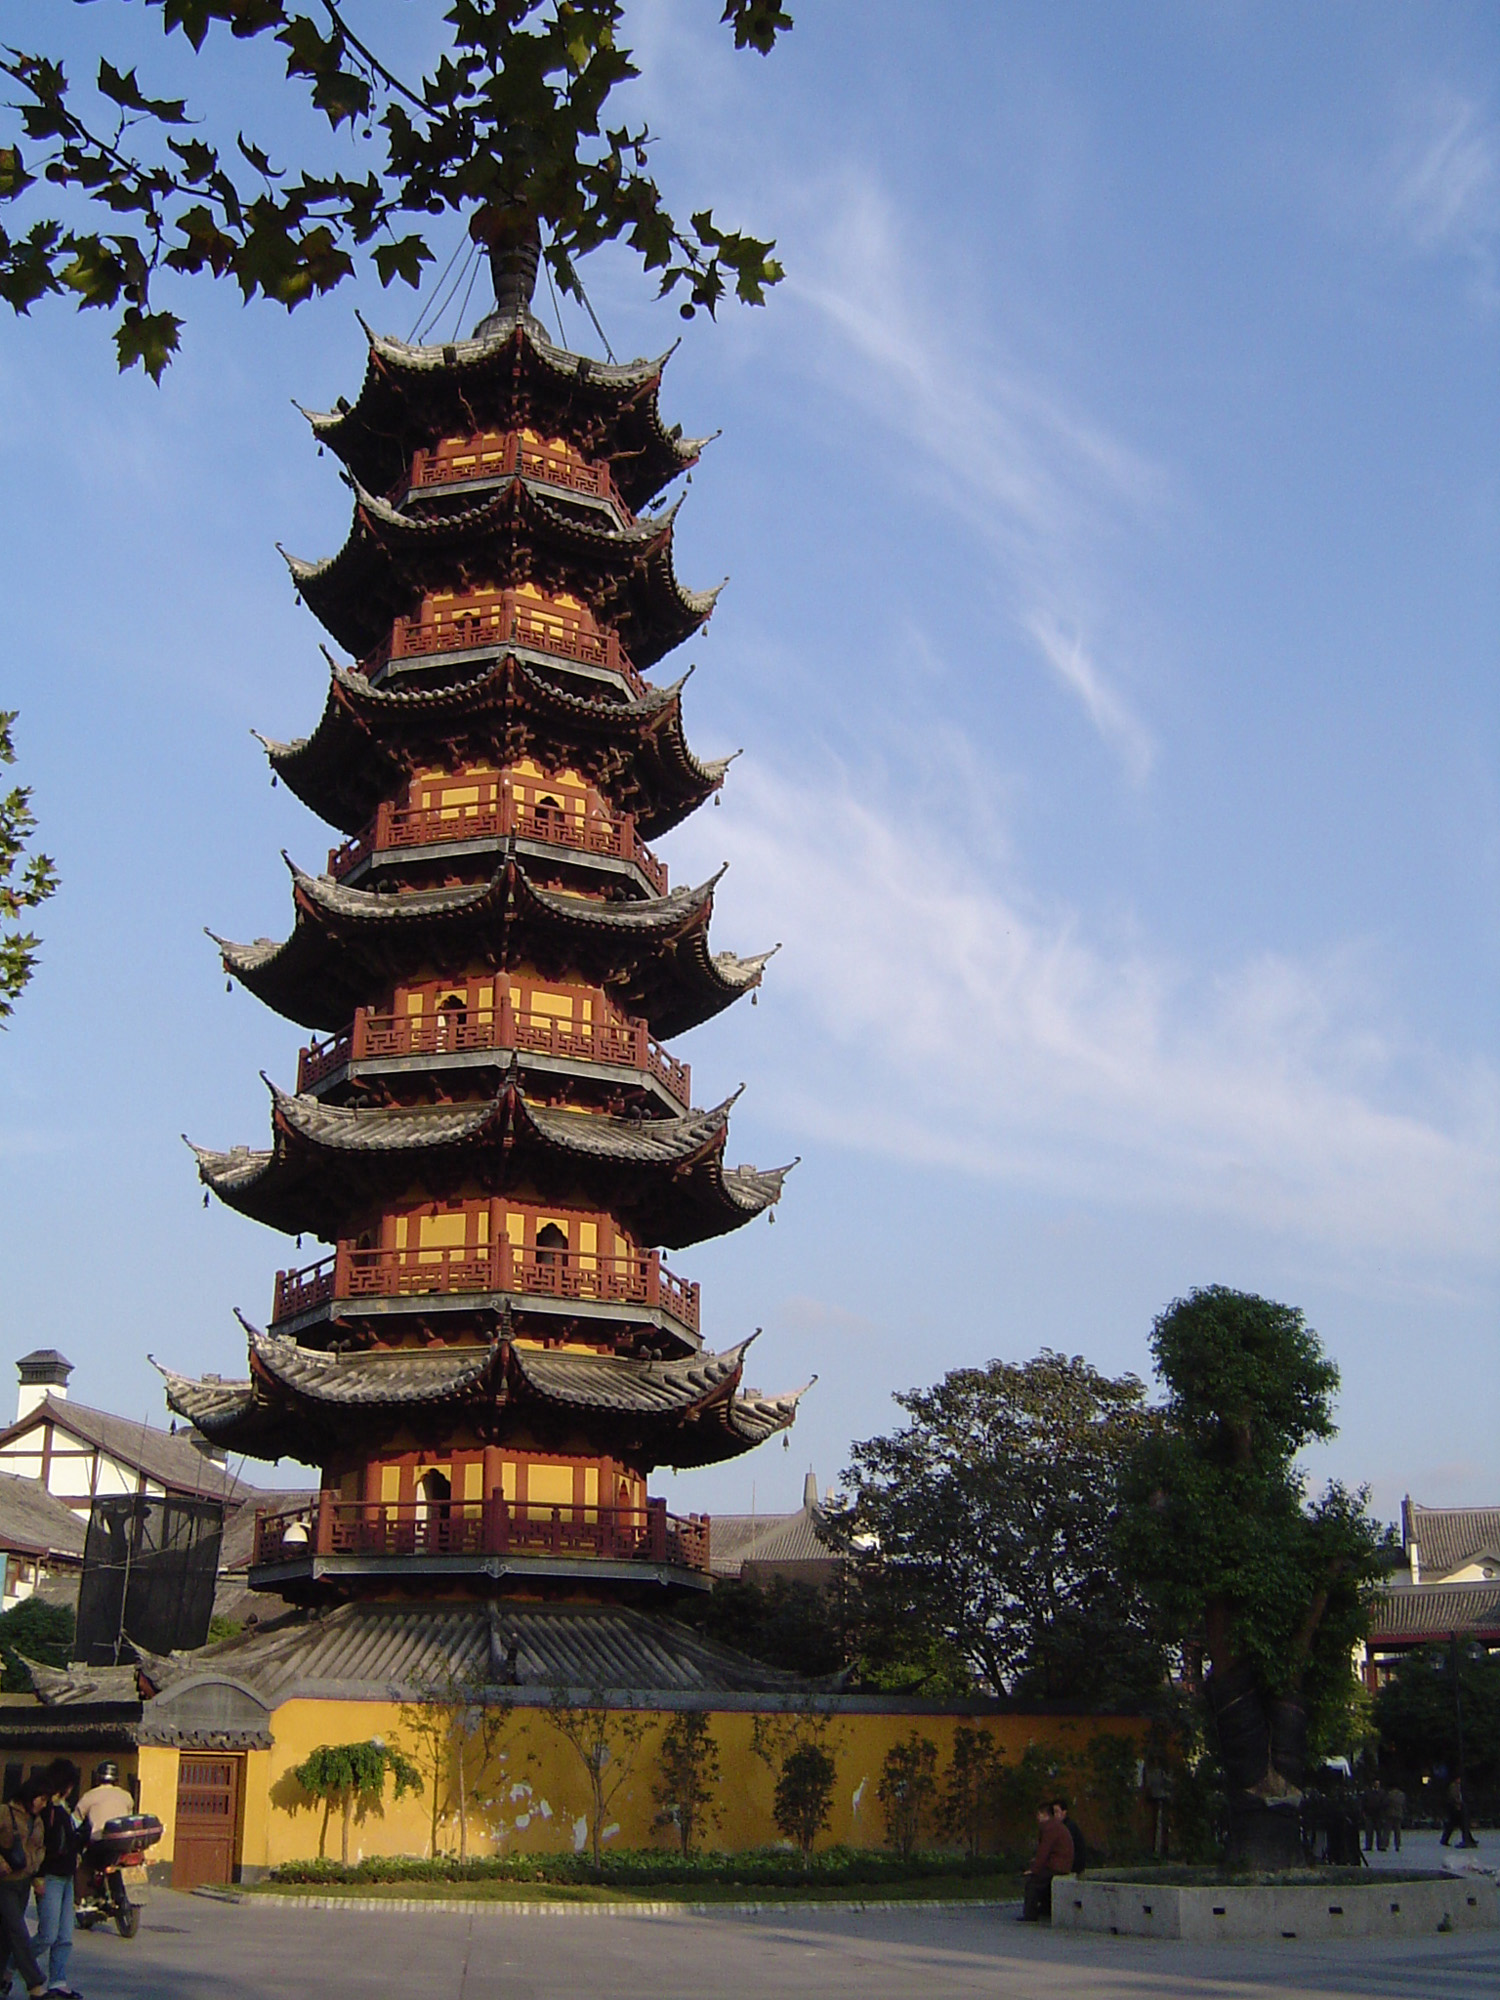 free image of traditional chinese pagoda